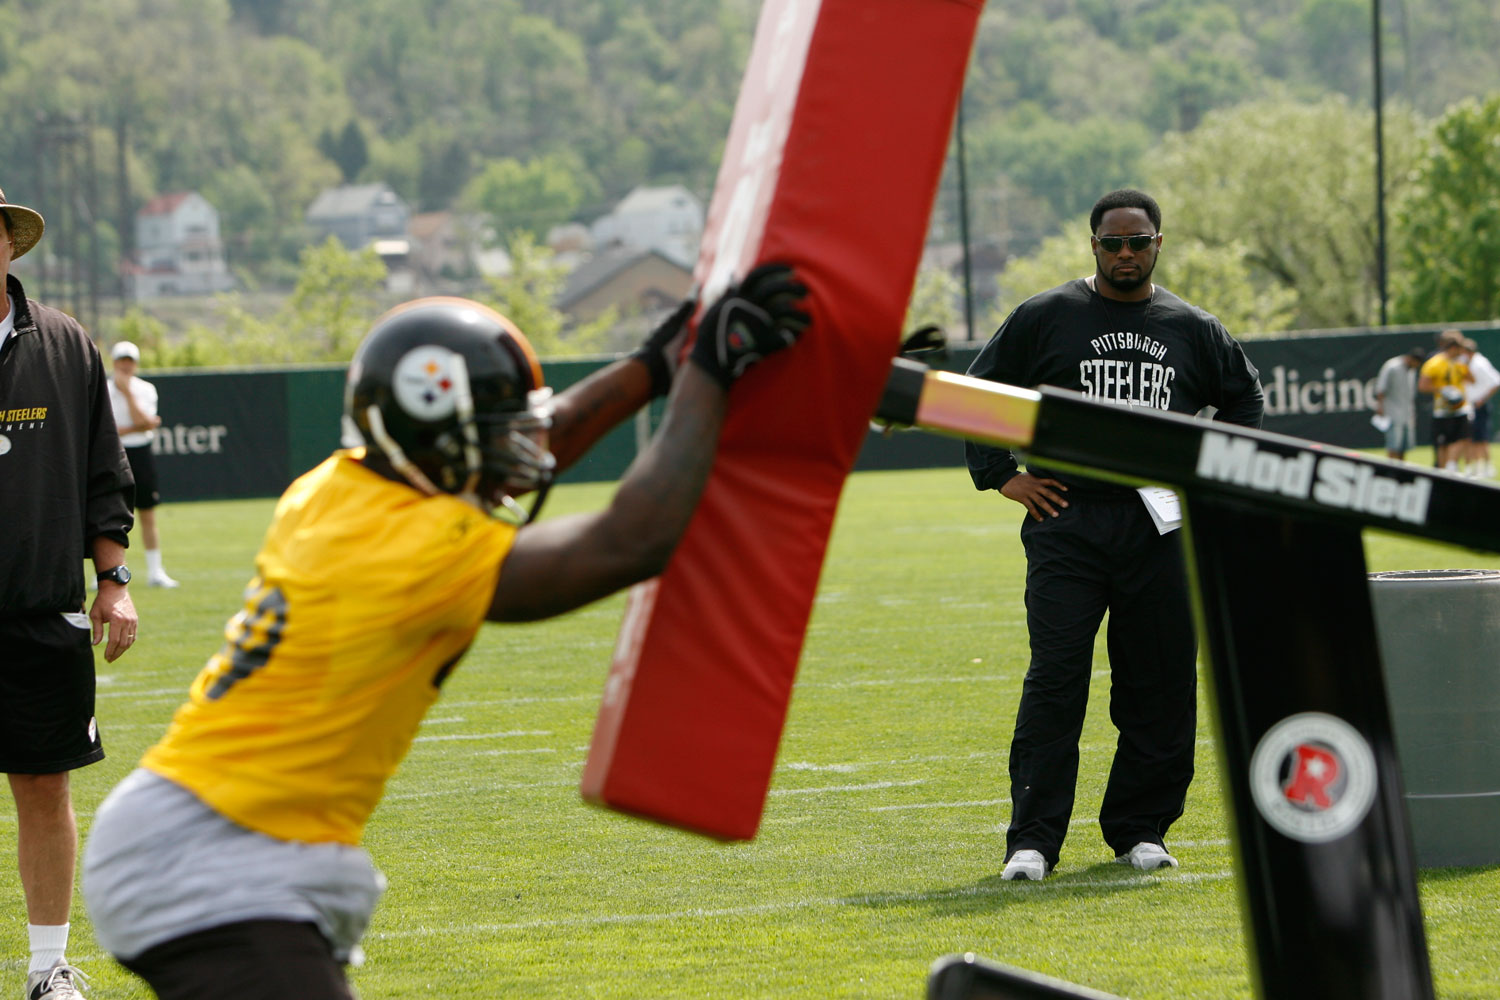 Pittsburg Steelers head coach Mike Tomlin watches over a practice in May 2007.